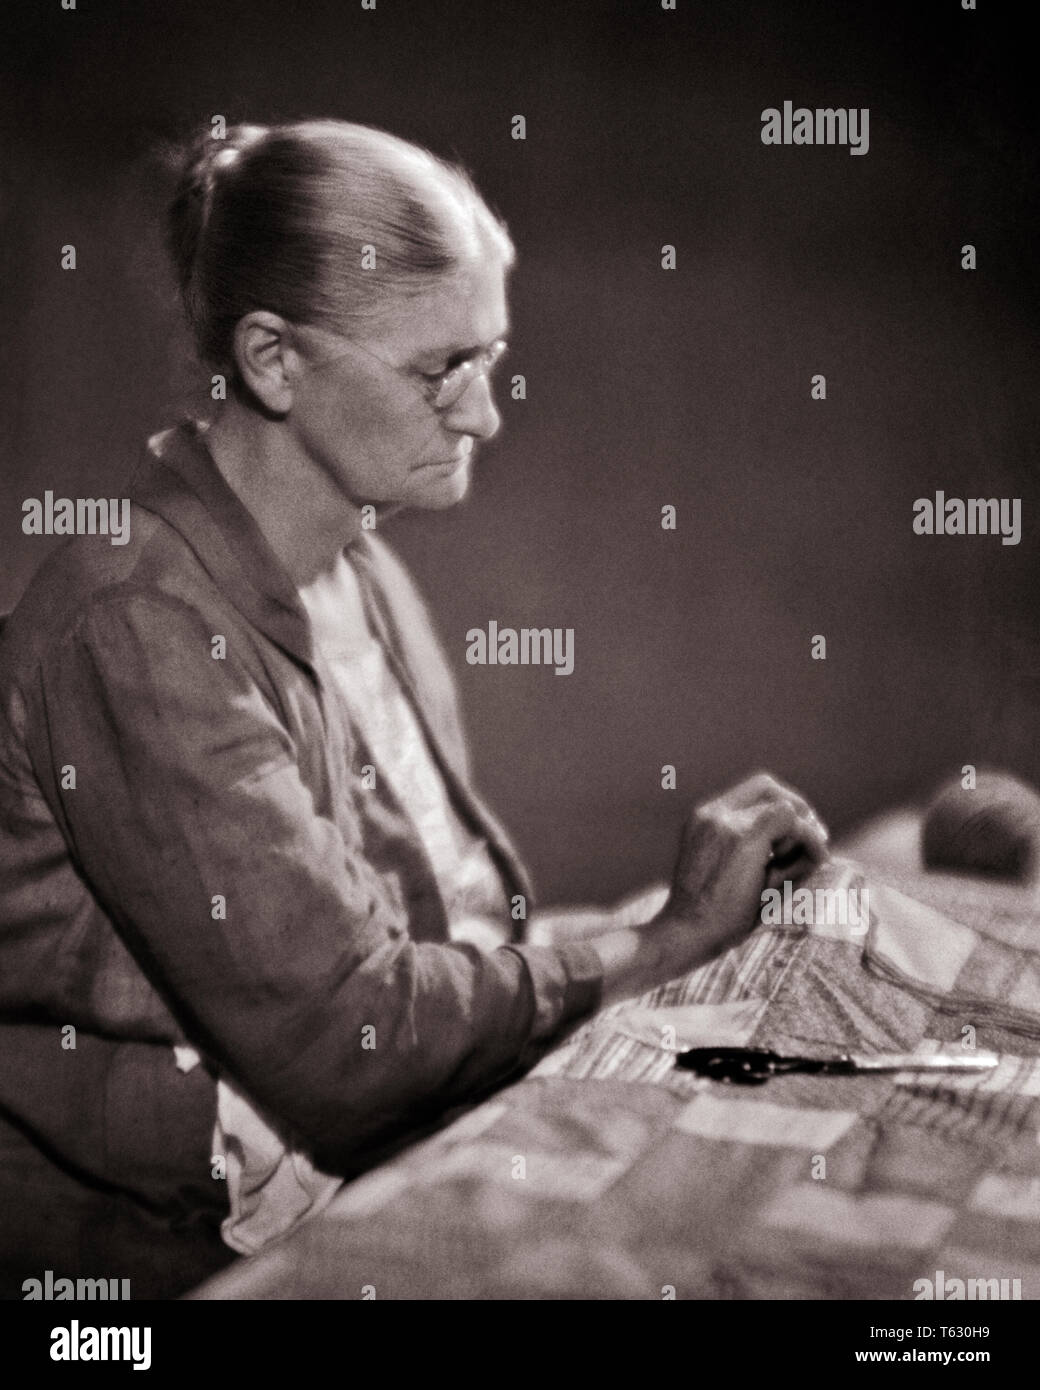 1930s ELDERLY WOMAN SEWING WORKING ON A PATCHWORK QUILT WEARING EYEGLASSES FOCUSED ON HER HAND WORK - s17446 HAR001 HARS SKILLS OLDSTERS OLDSTER PATCHWORK ELDERS NEEDLEWORK SEAMSTRESS QUILTING CREATE CREATIVITY ELDERLY WOMAN FOCUSED QUILT BLACK AND WHITE CAUCASIAN ETHNICITY HANDMADE HAR001 OLD FASHIONED - Stock Image